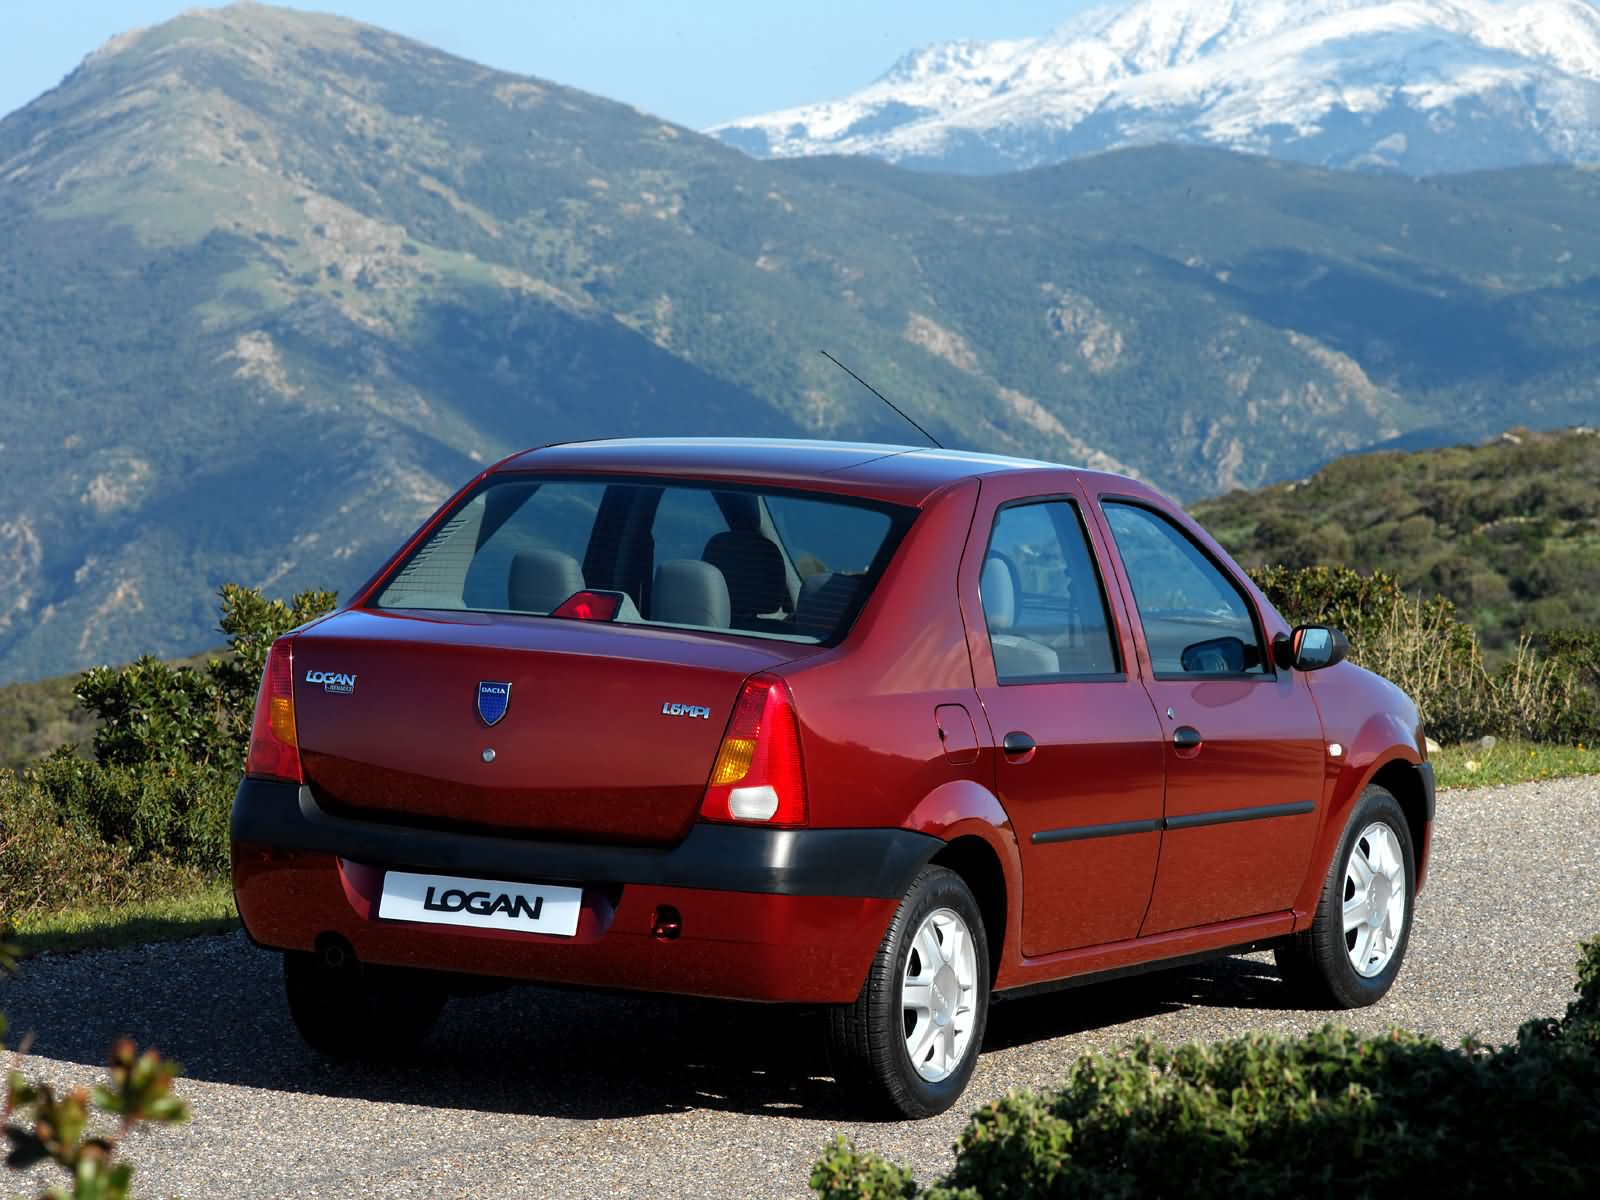 Dacia Logan 1.6 MPI photo 15561